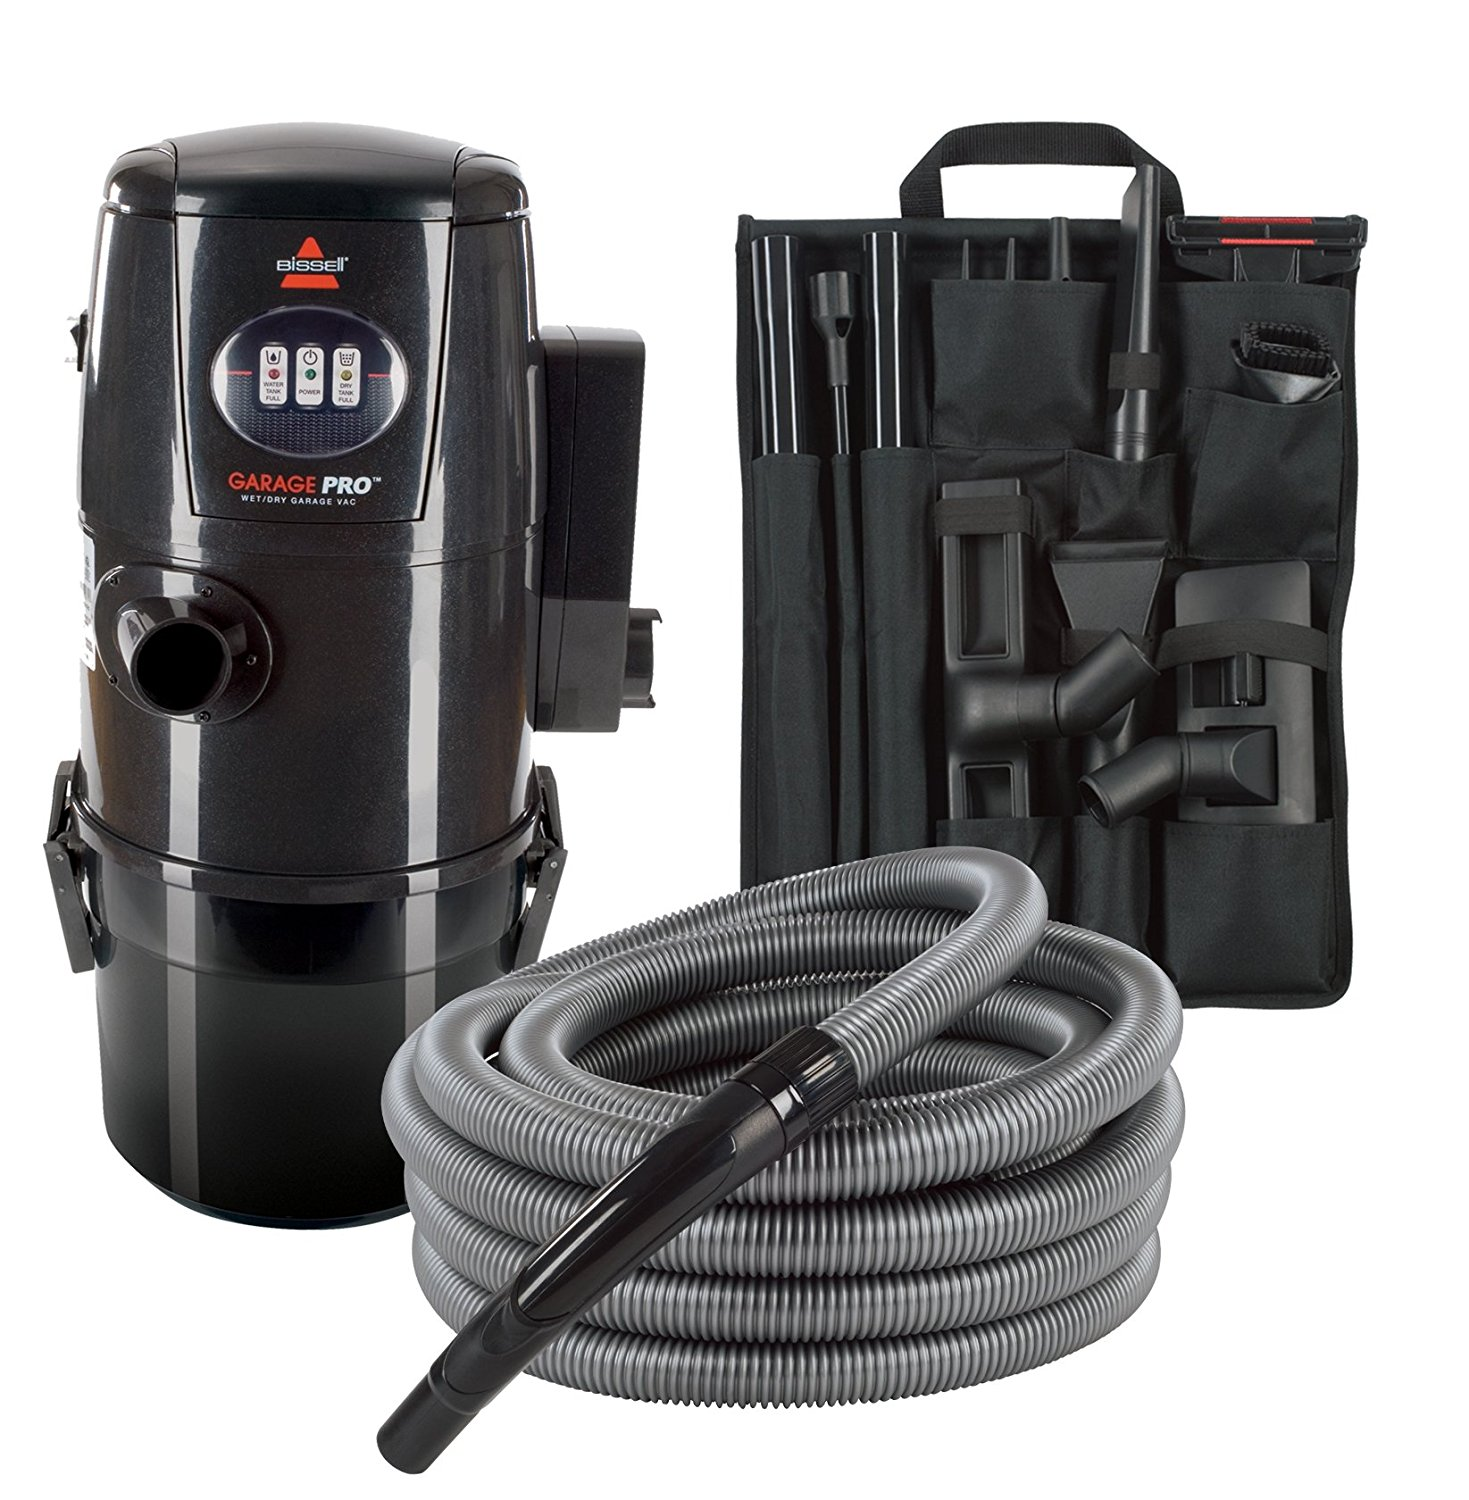 BISSELL Garage Pro Wall Mount Wet/Dry Vacuum